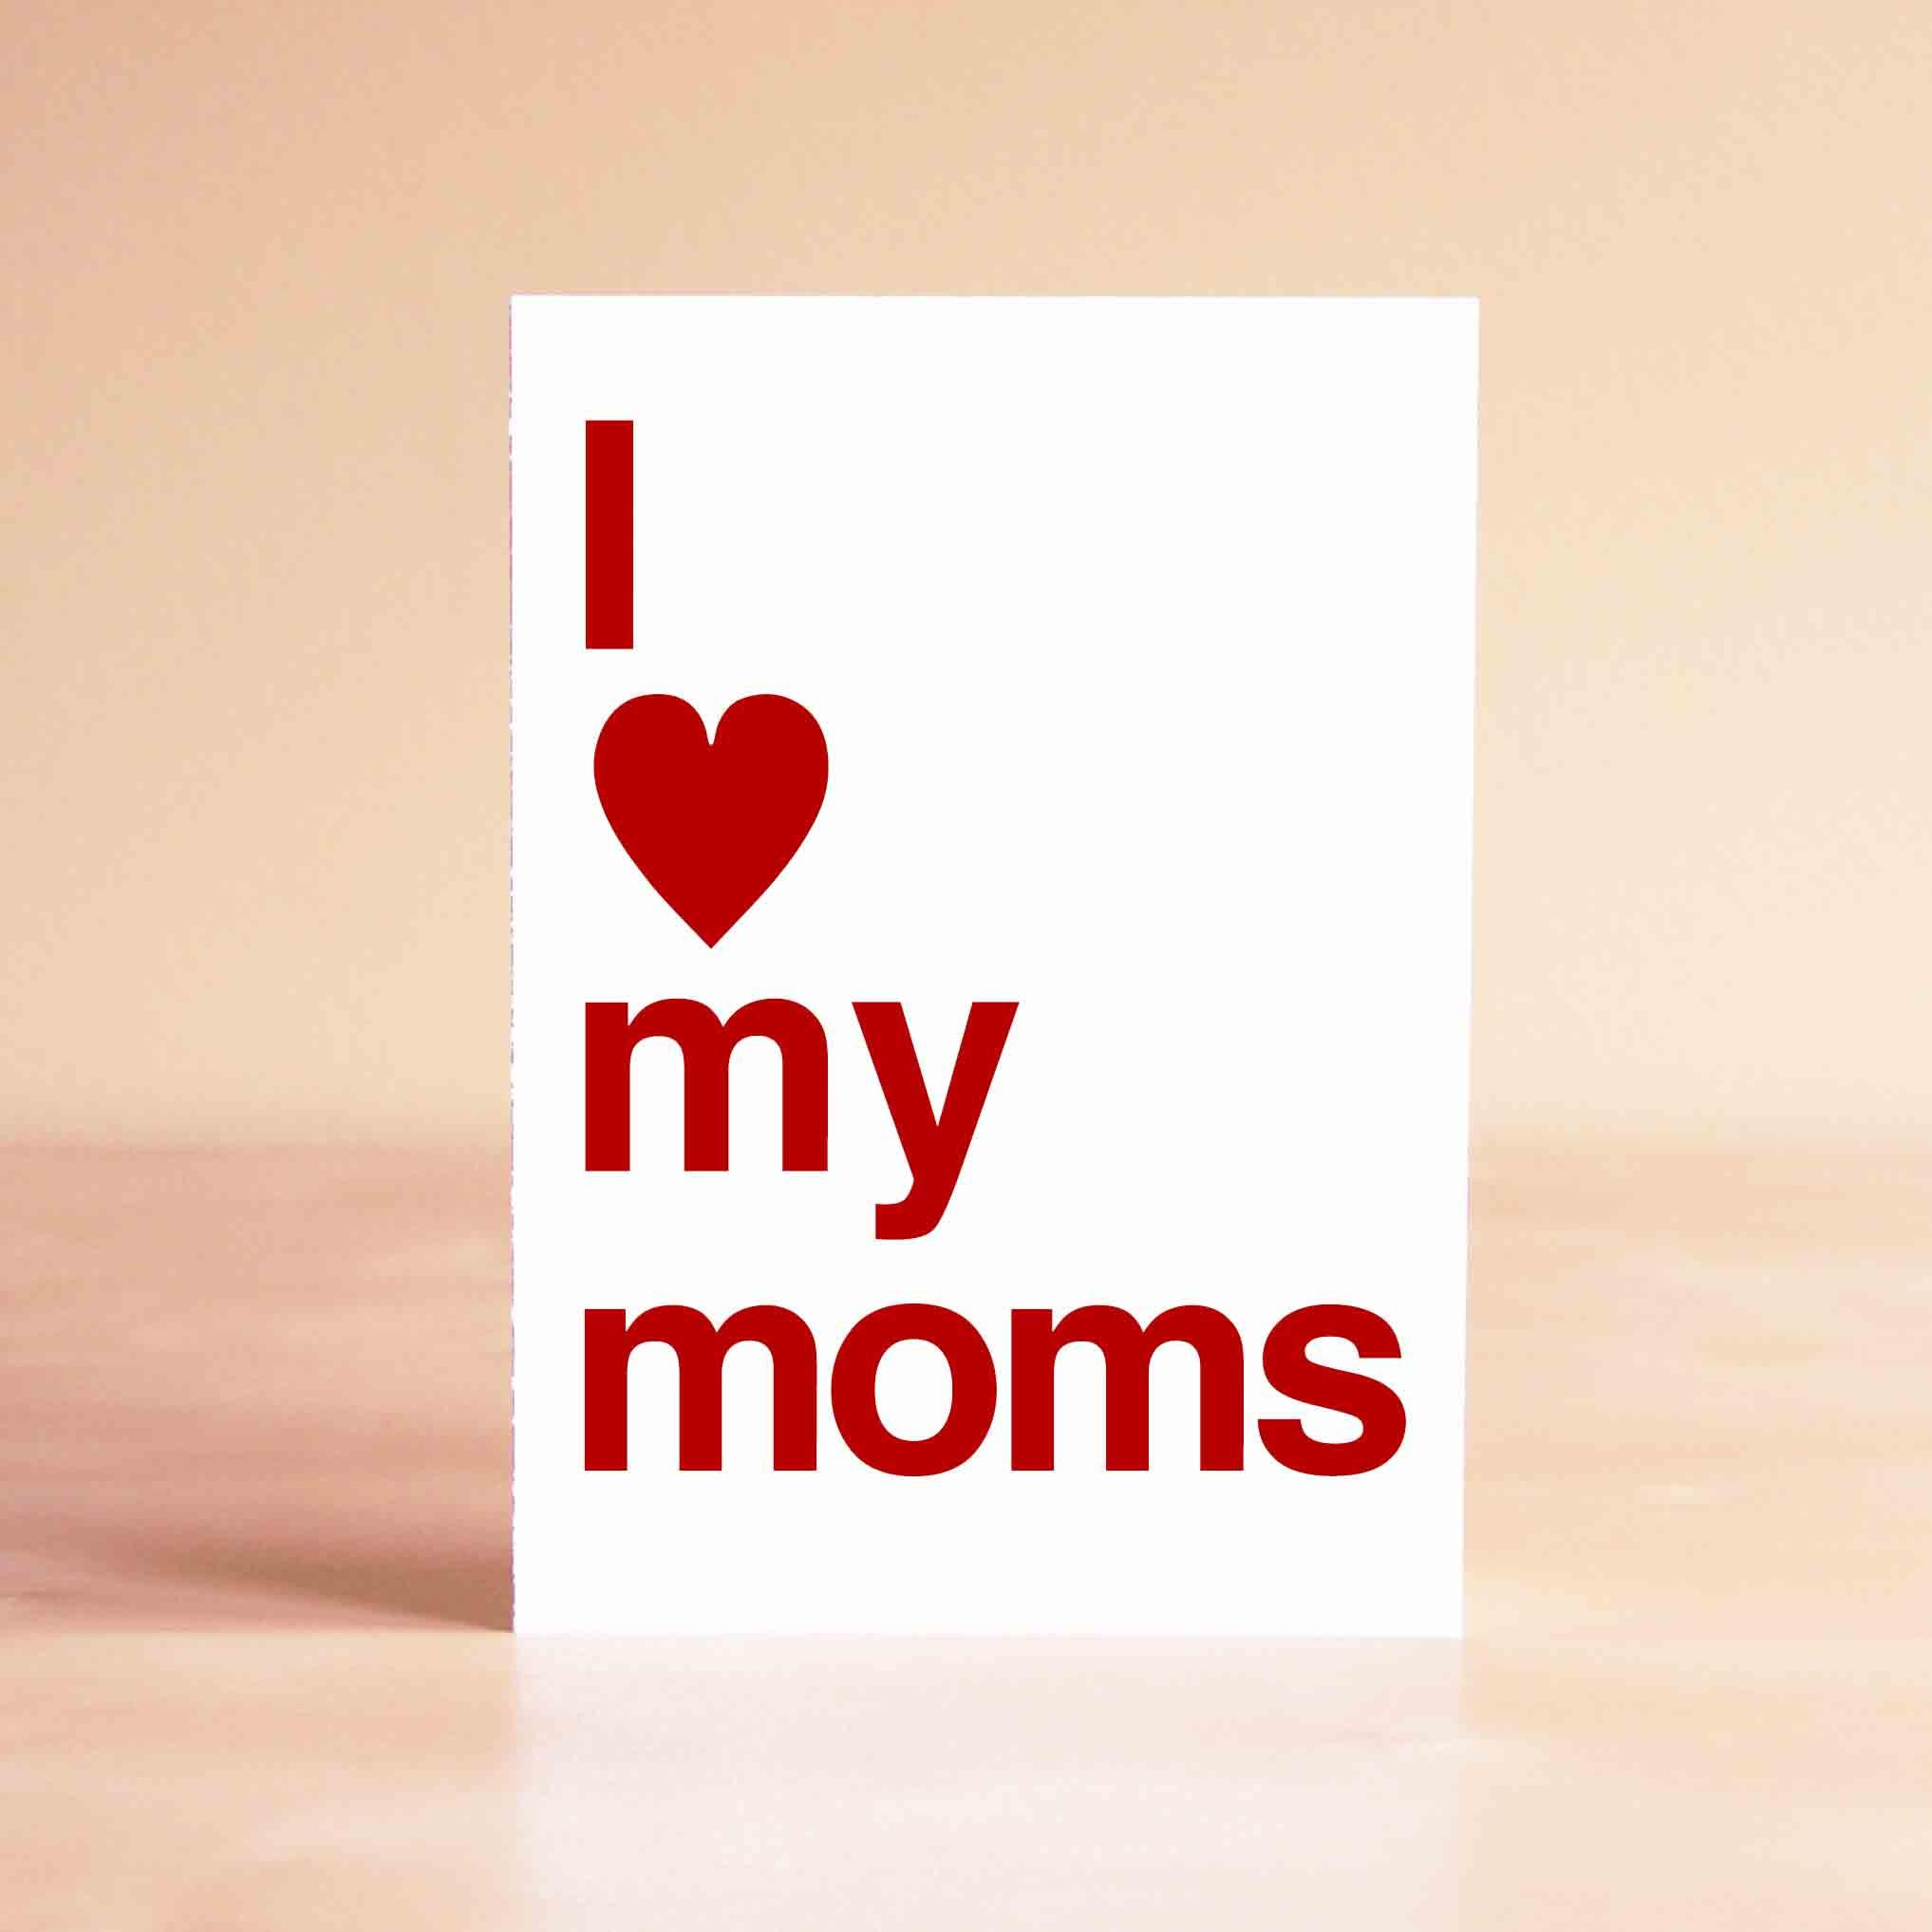 Lesbian Moms Card Lesbian Mothers Day Card Two Moms Card I – Lesbian Valentines Day Cards